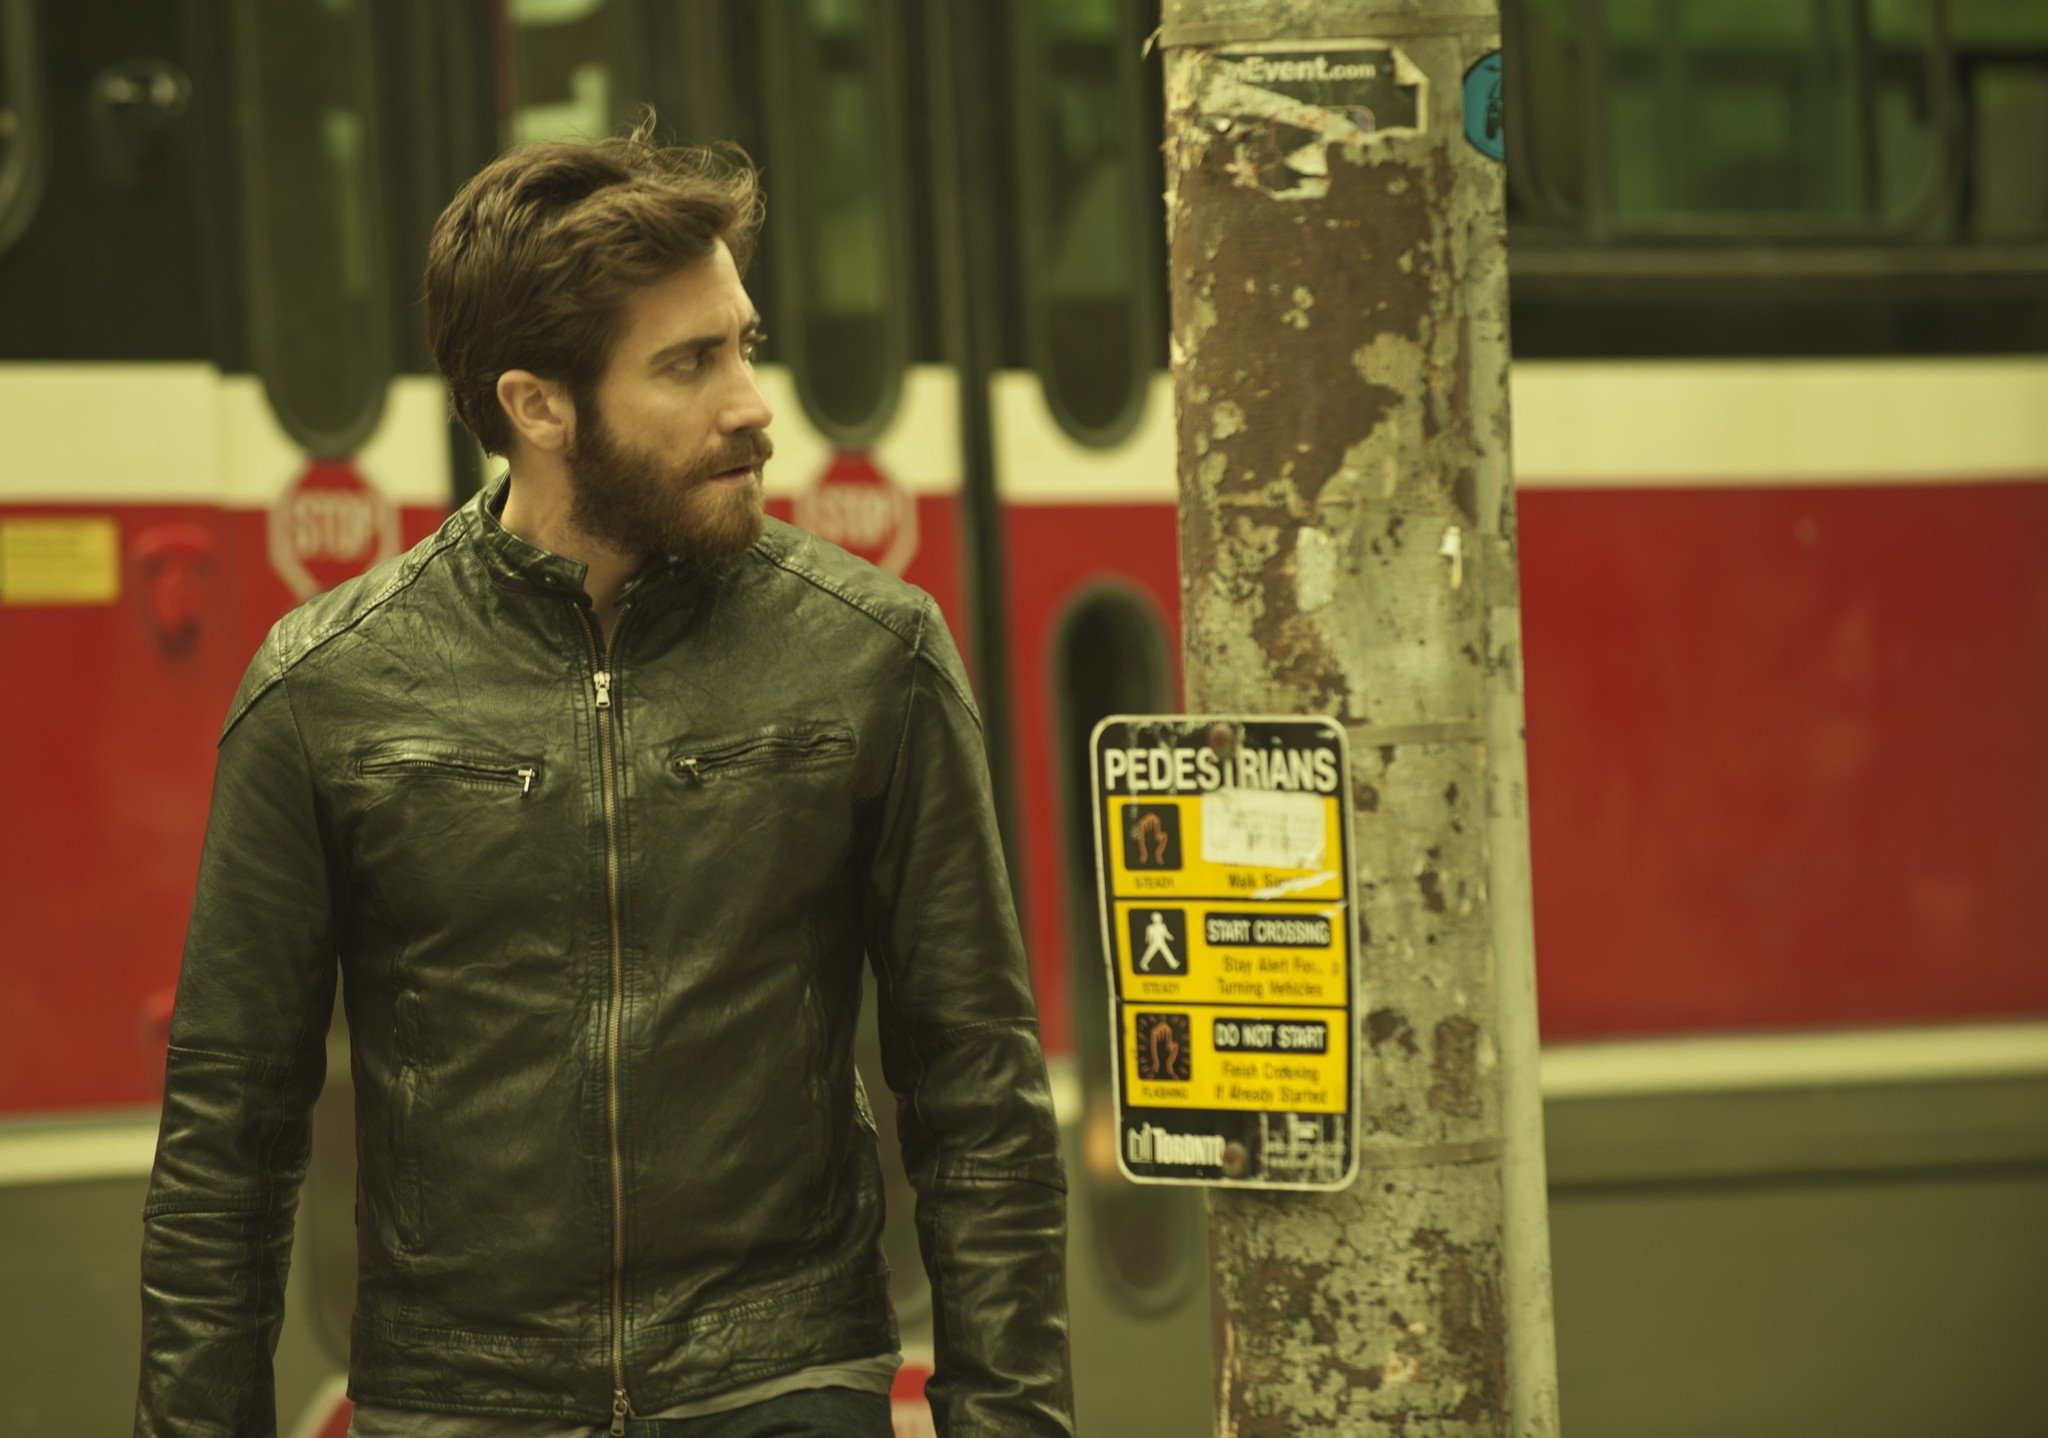 Photo du film Enemy avec Jake Gyllenhaal